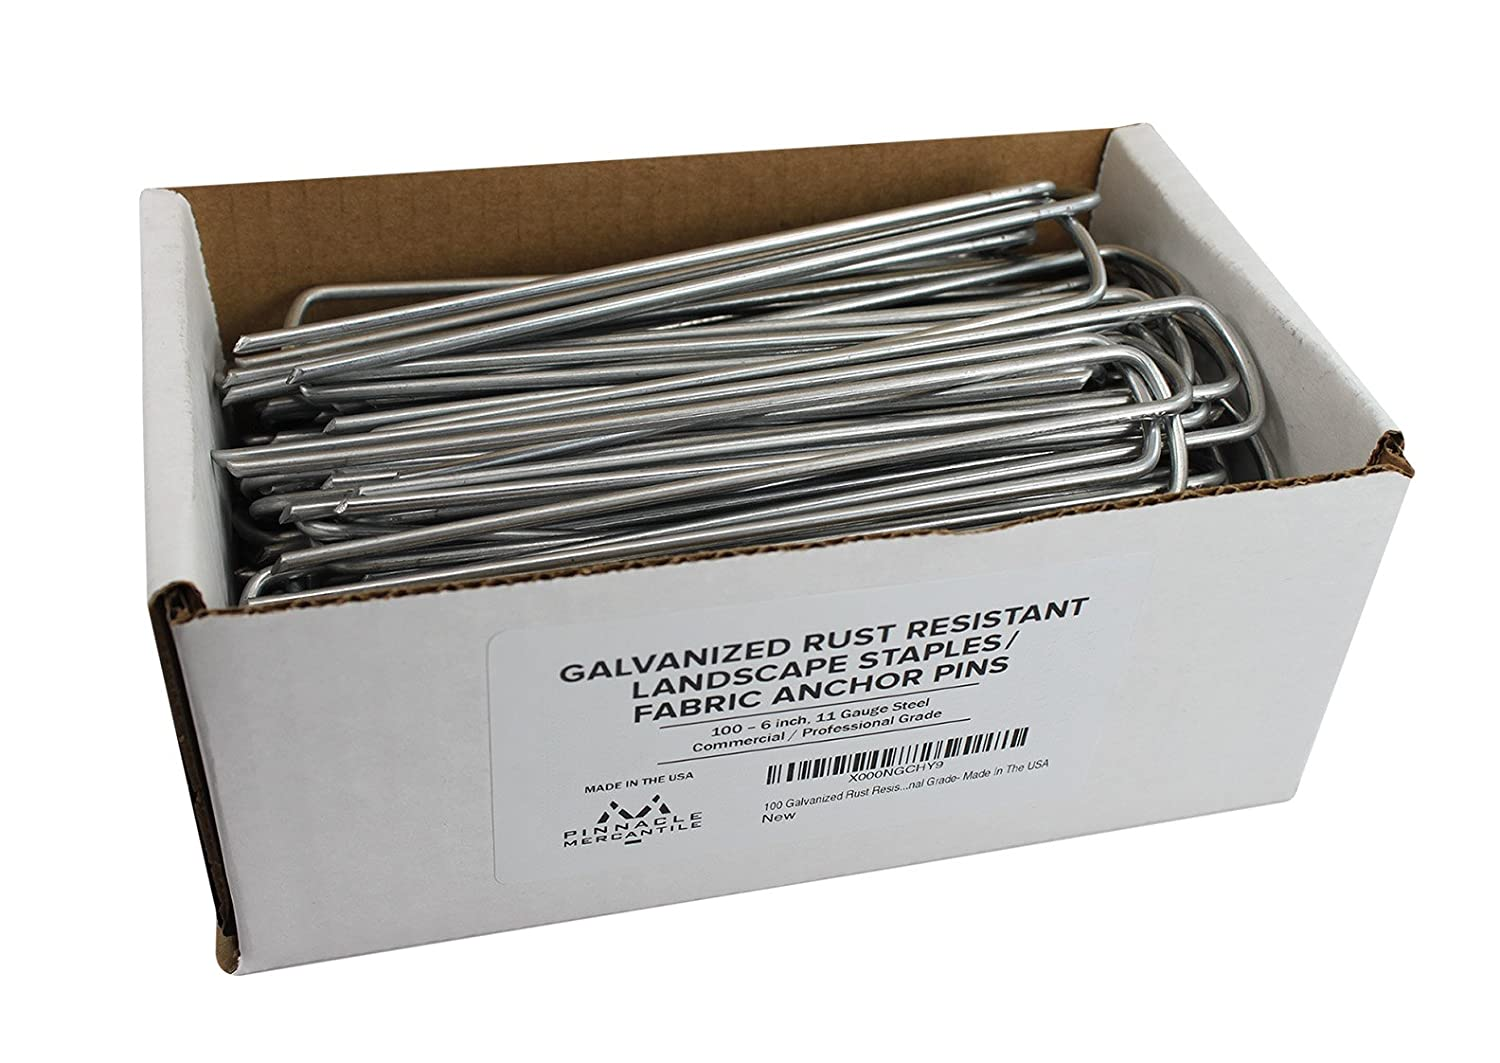 100 Galvanized Garden Landscape Staples Fabric Anchor Pins Anti Rust 6 inch 11 gauge Steel Made In USA By Pinnacle Mercantile